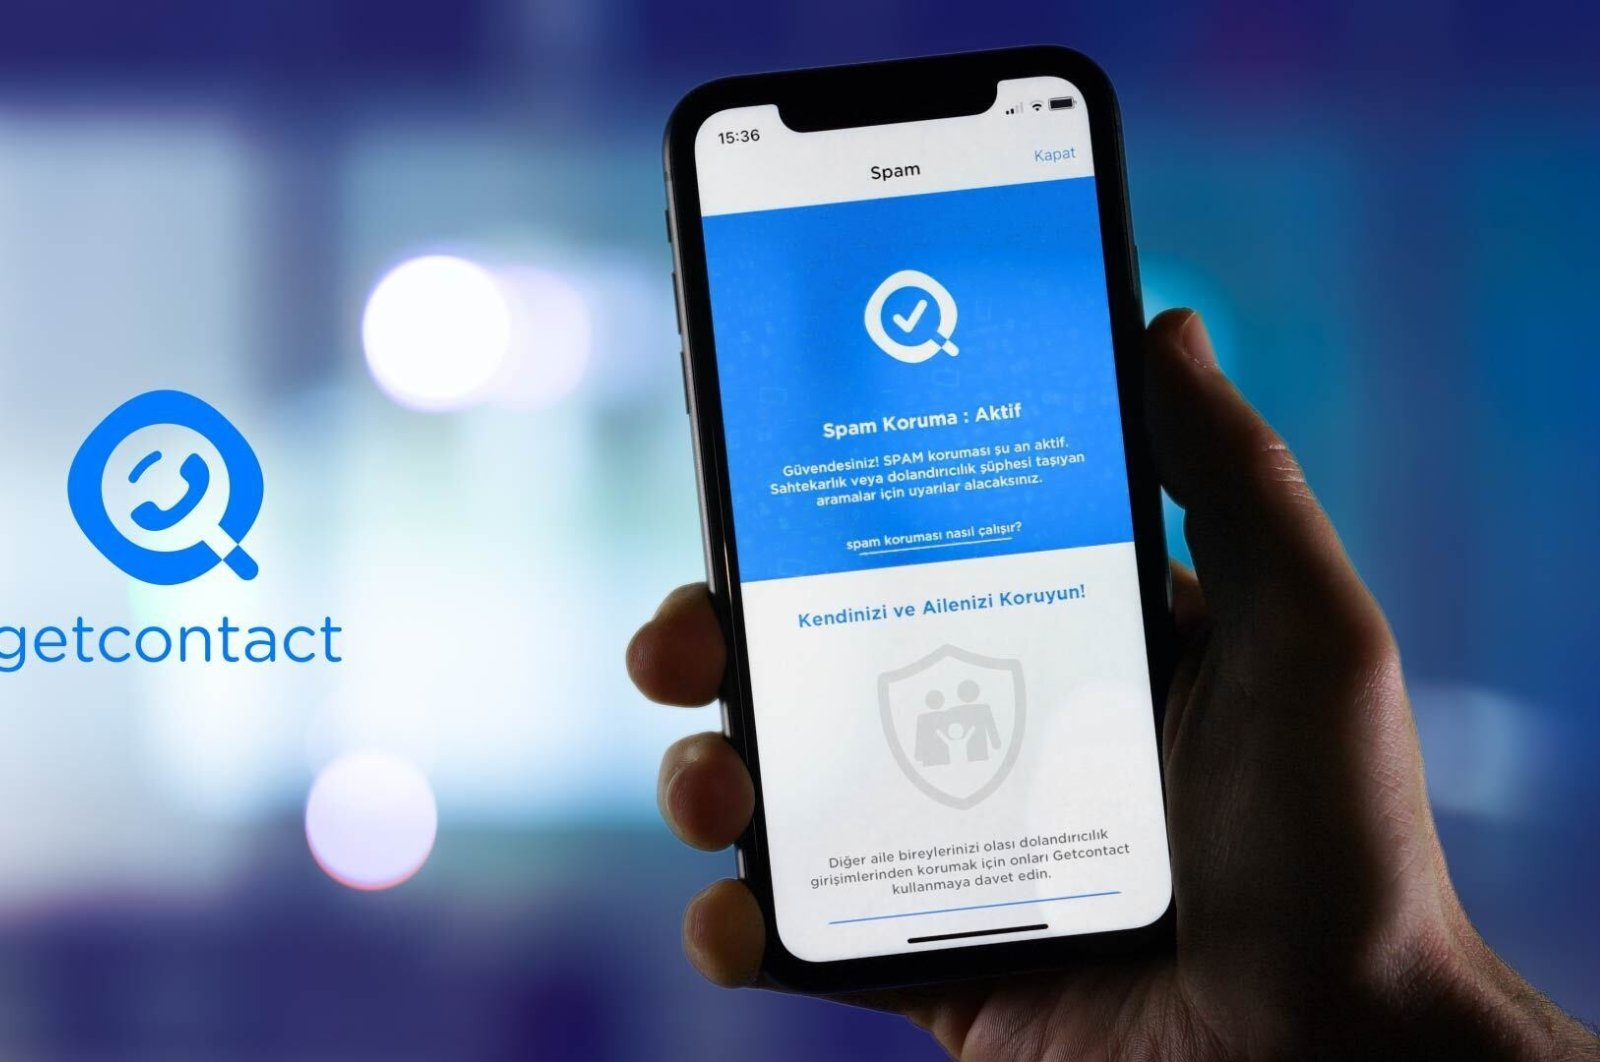 The Getcontact app advertises itself as a powerful tool to block unwanted incoming calls and has reached more than 120 million users.